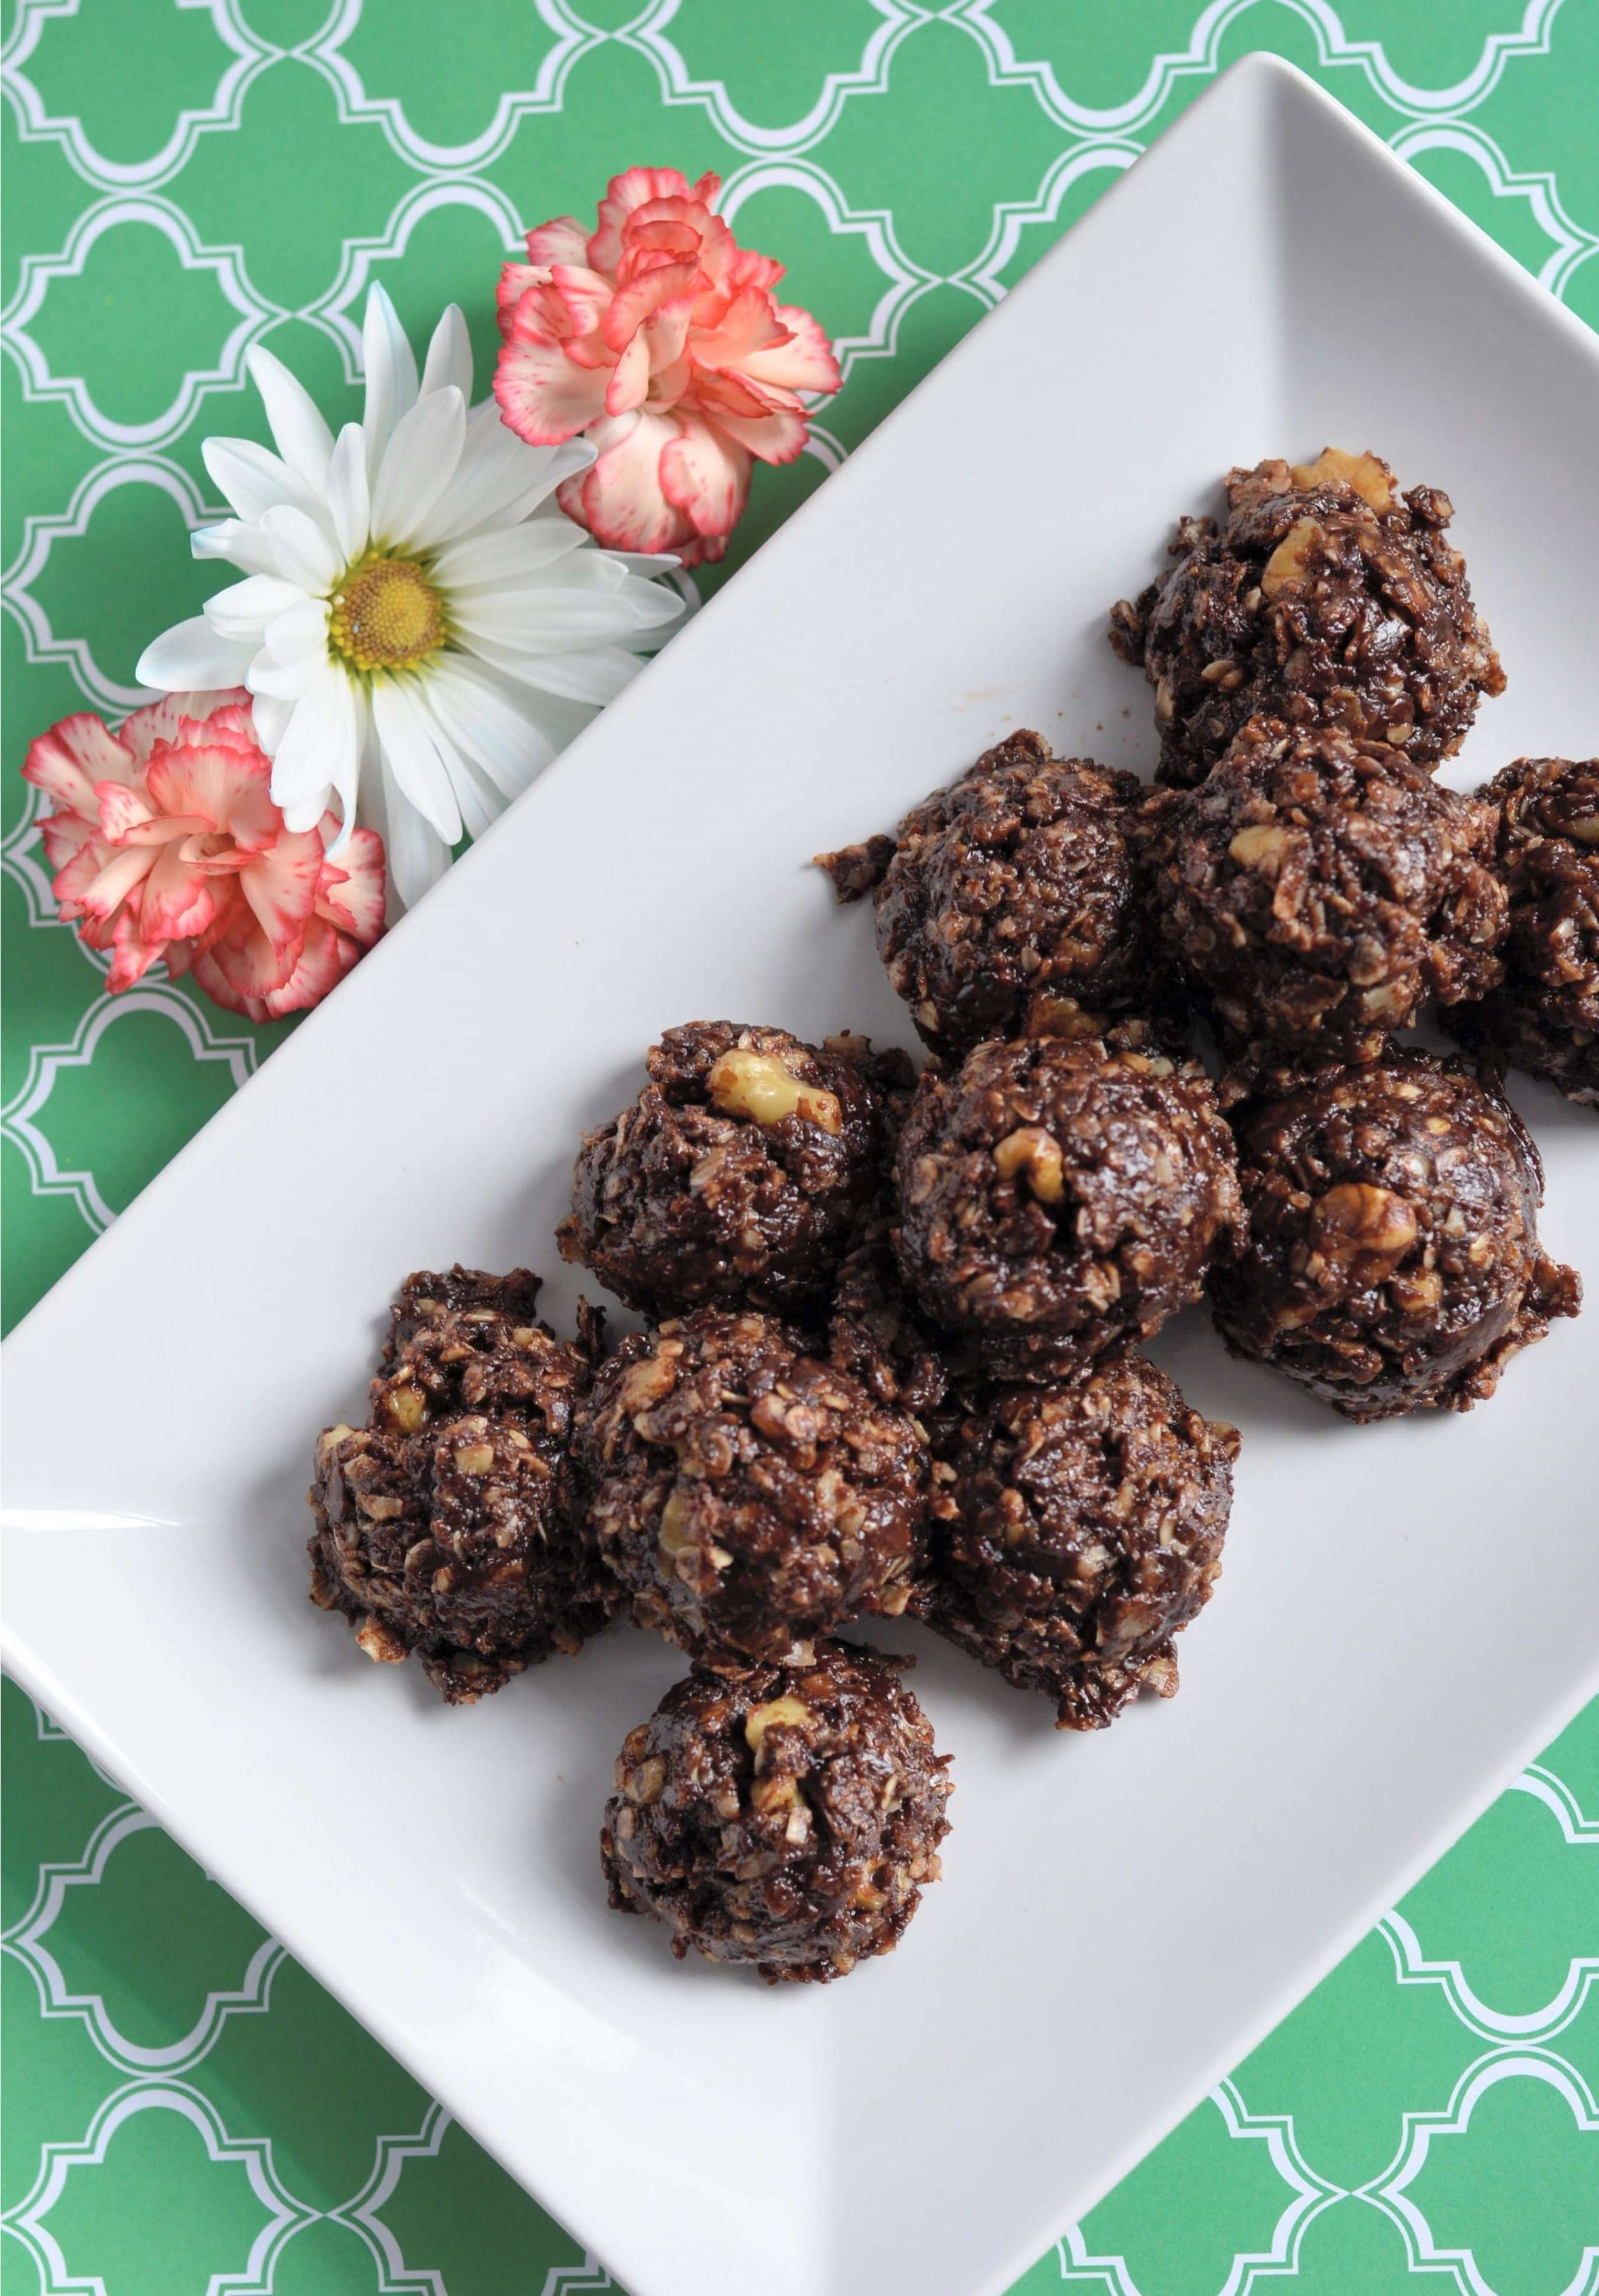 completed no bake lactation cookies